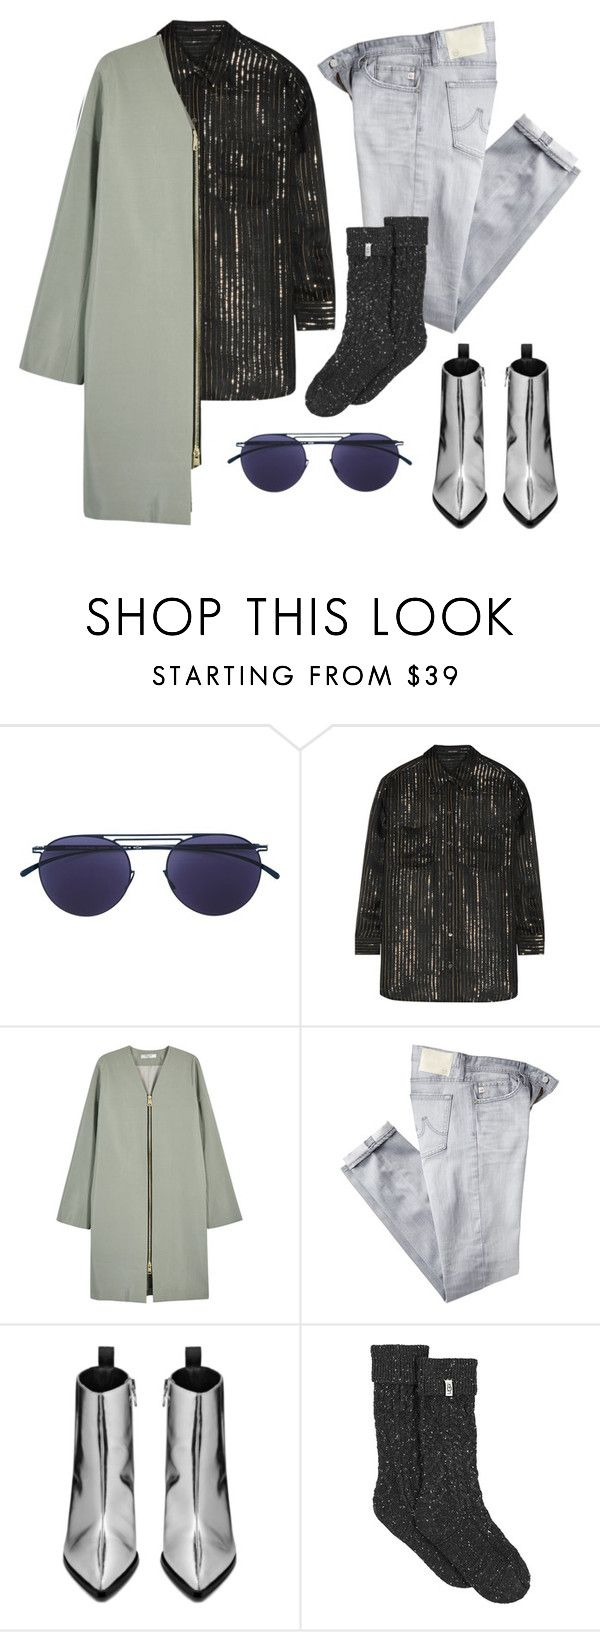 """""""221. Chic grunge"""" by sollis ❤ liked on Polyvore featuring Mykita, Equipment, Lanvin, AG Adriano Goldschmied, Acne Studios, UGG, StreetStyle, grunge, metallic and StreetChic"""